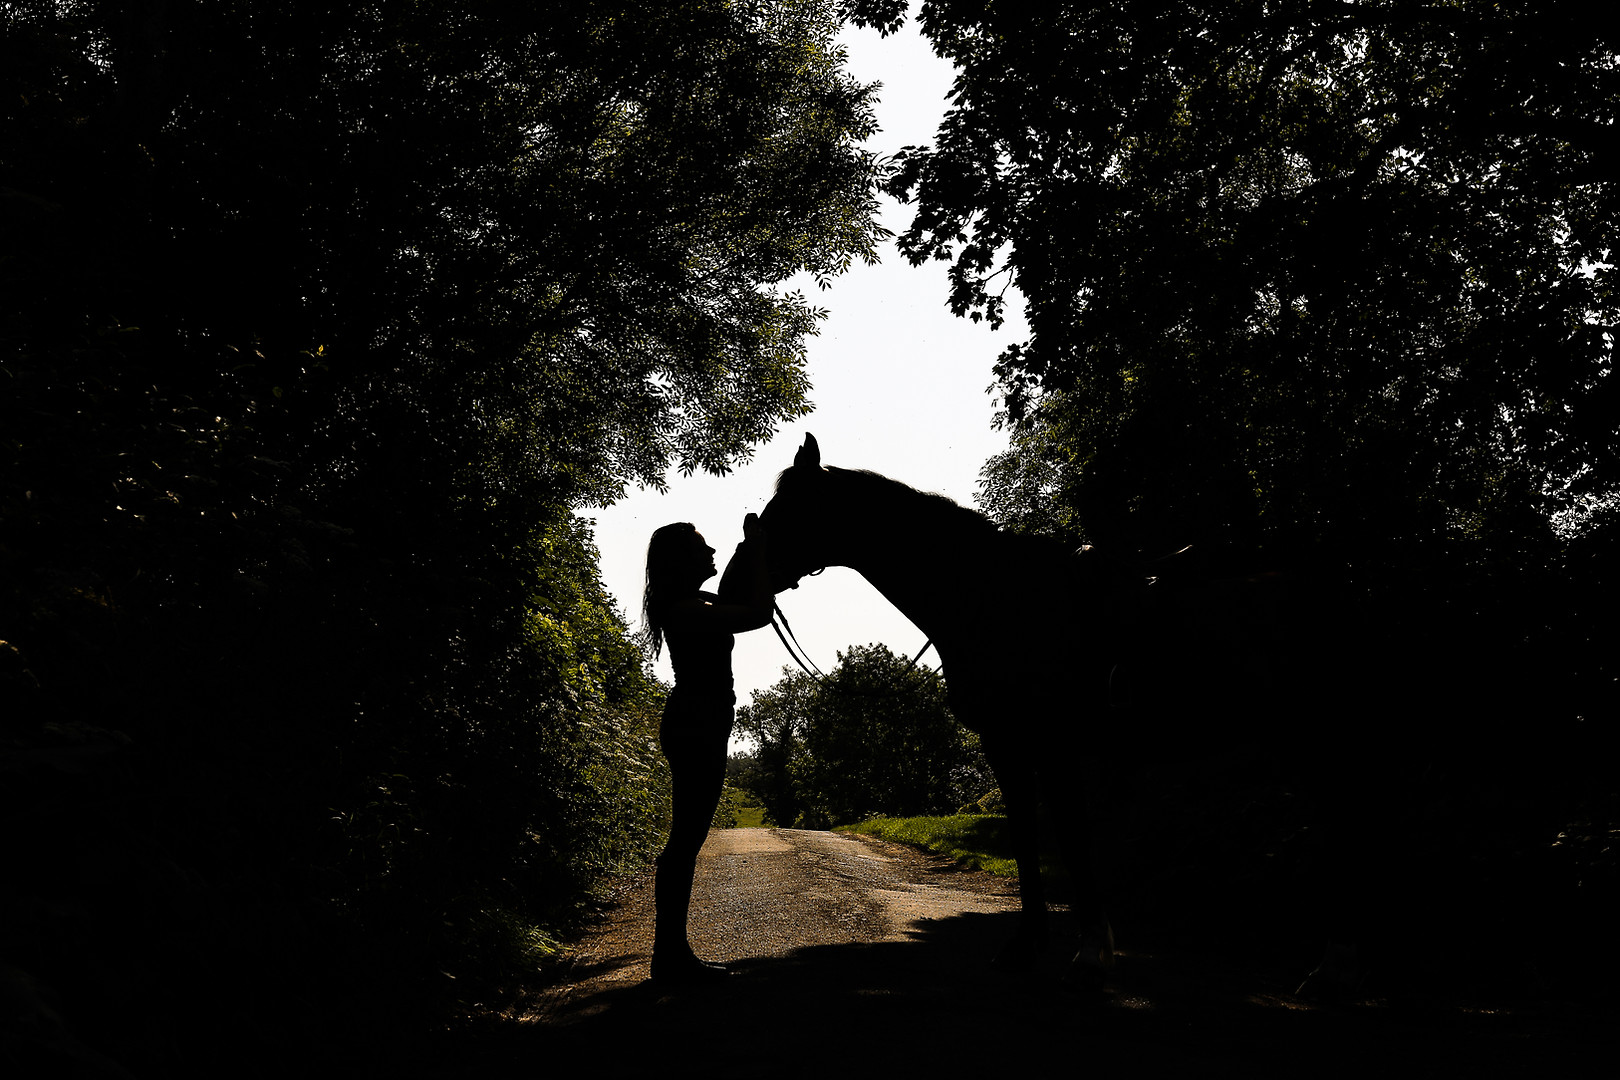 A girl and her horse.